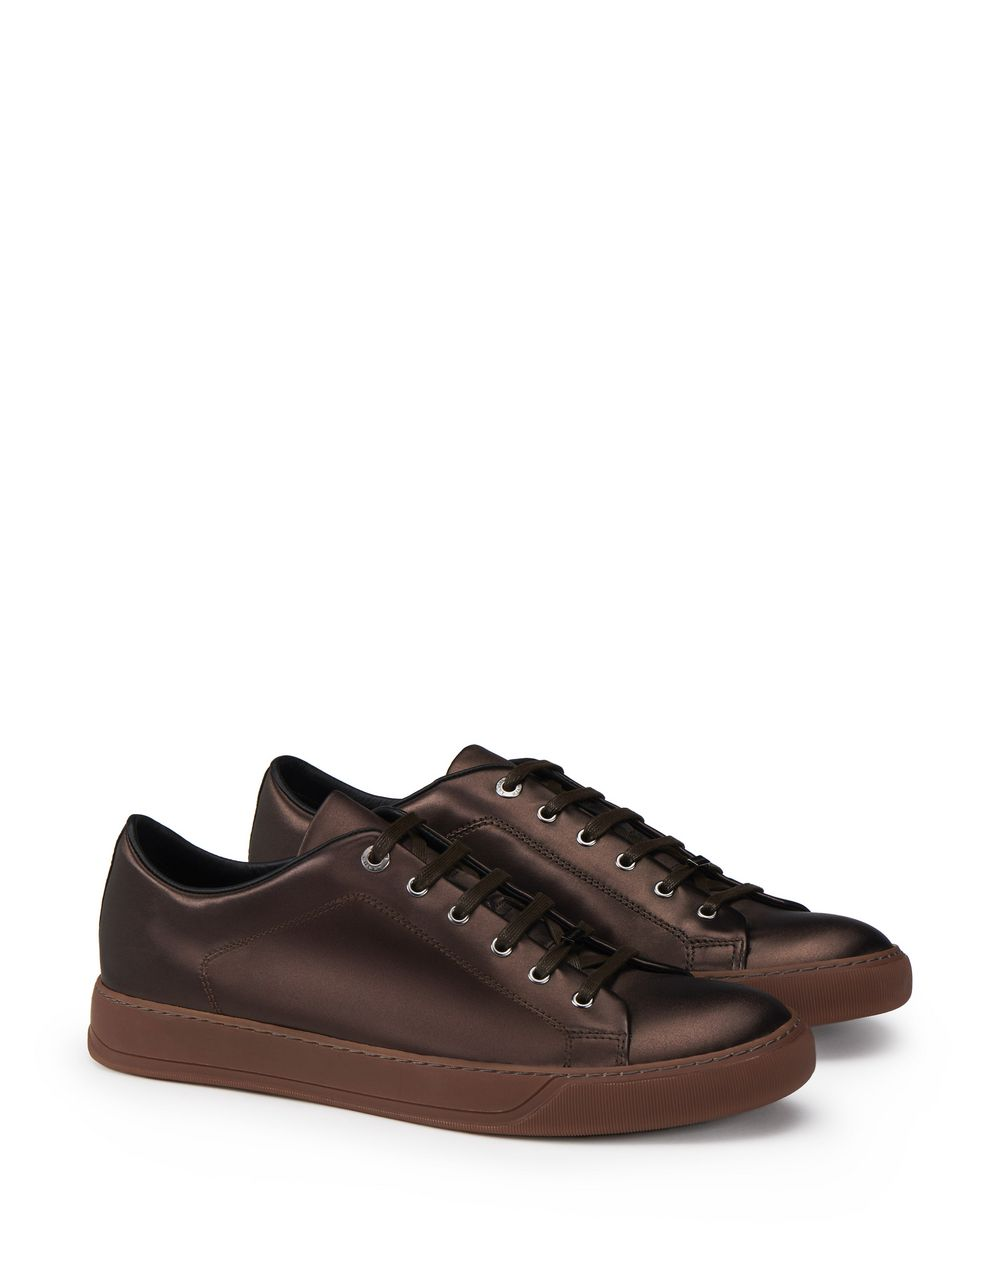 METALLIC BROWN LOW-TOP SNEAKER - Lanvin